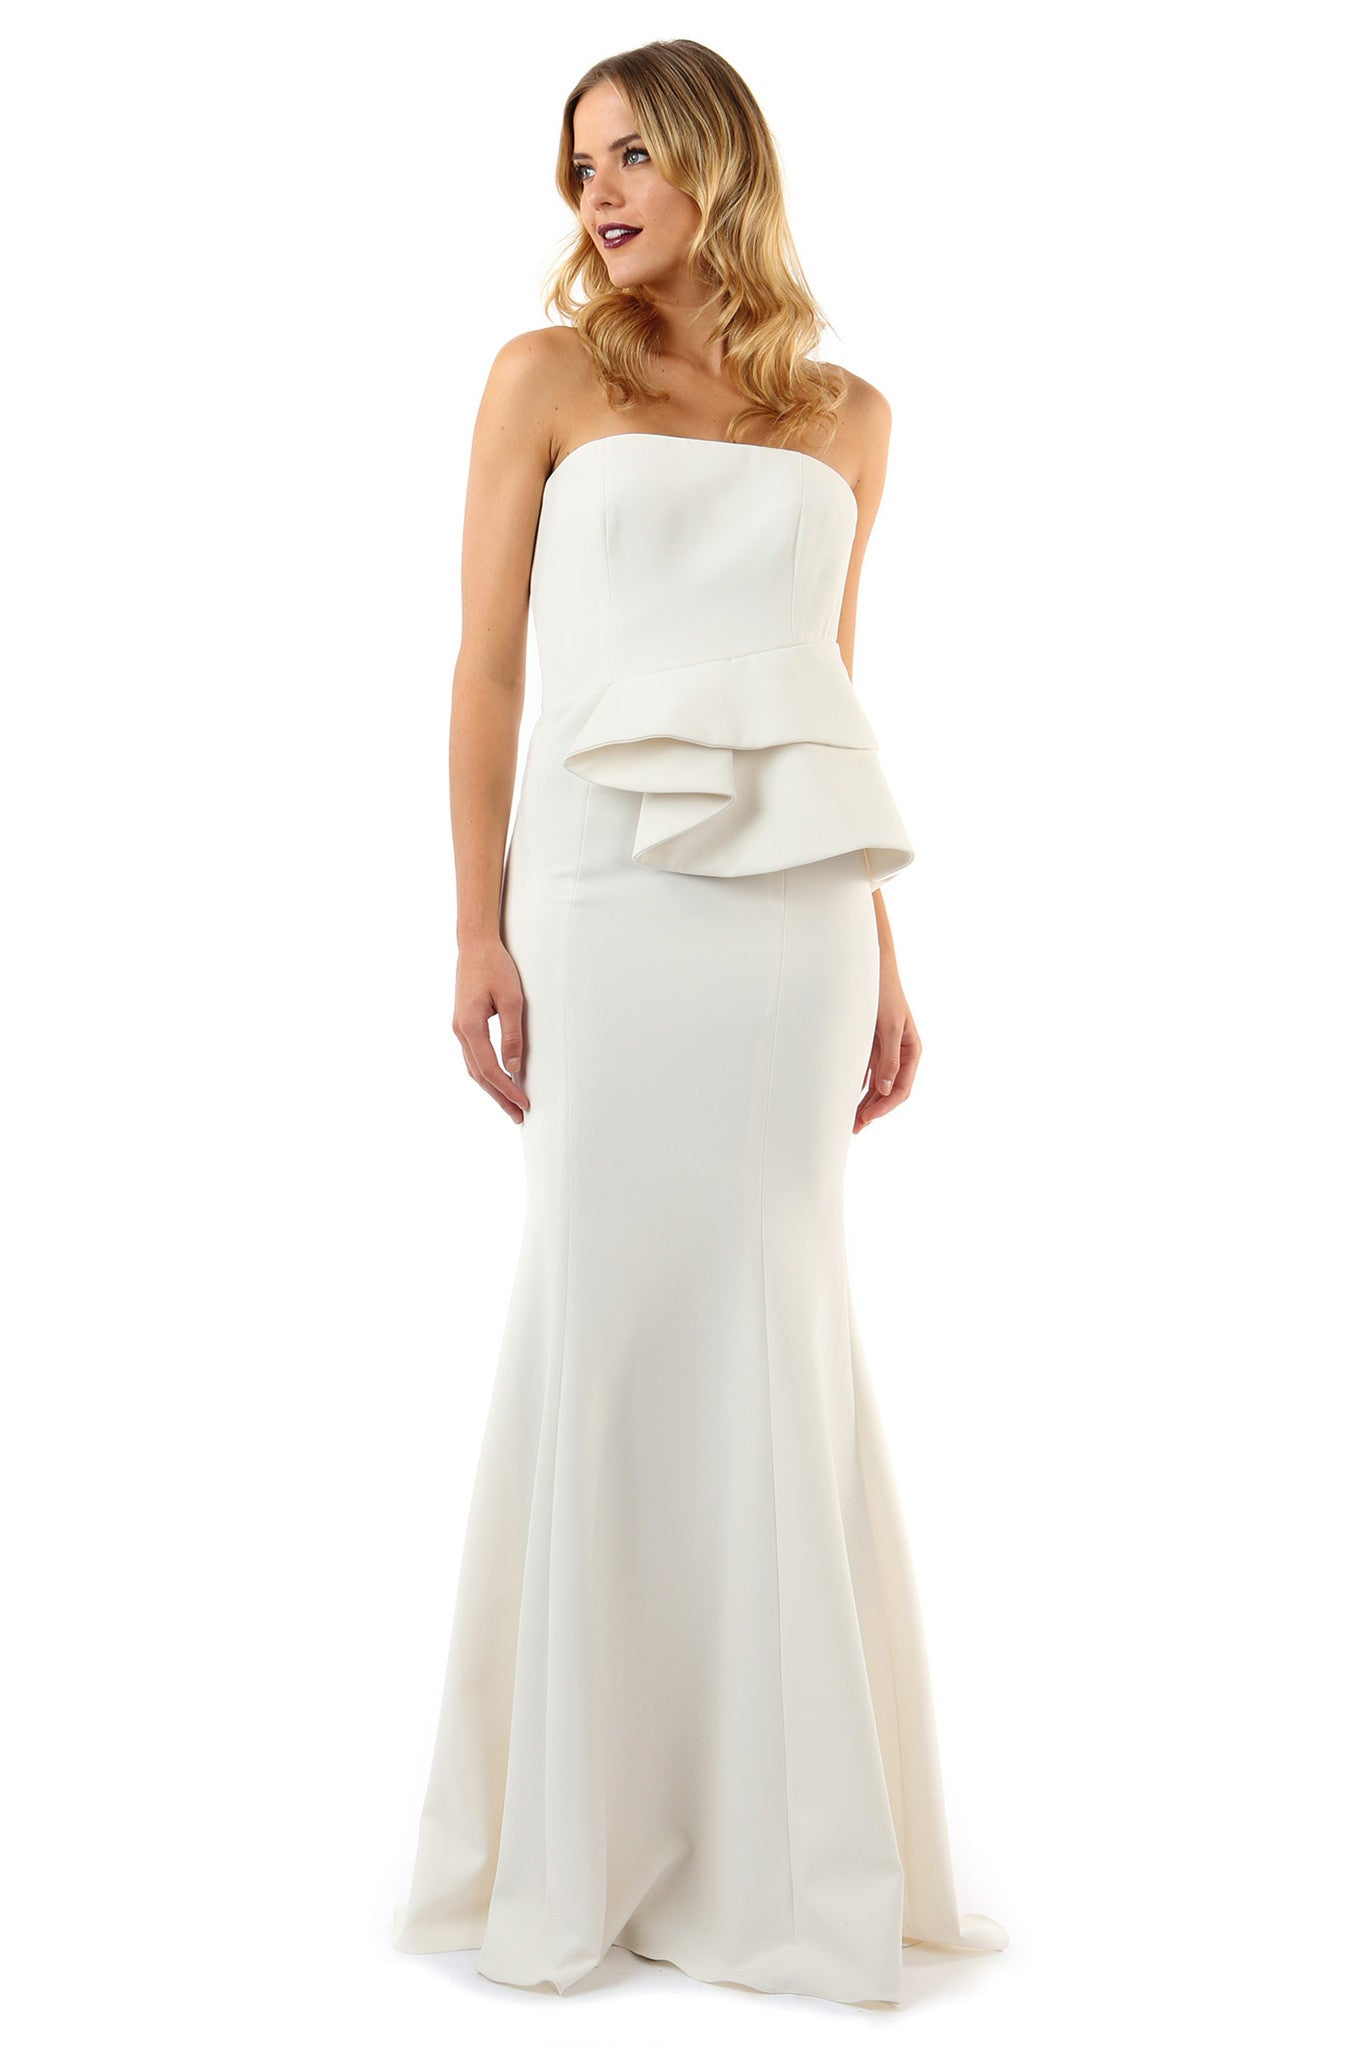 Jay Godfrey Ivory Peplum Gown - Front View